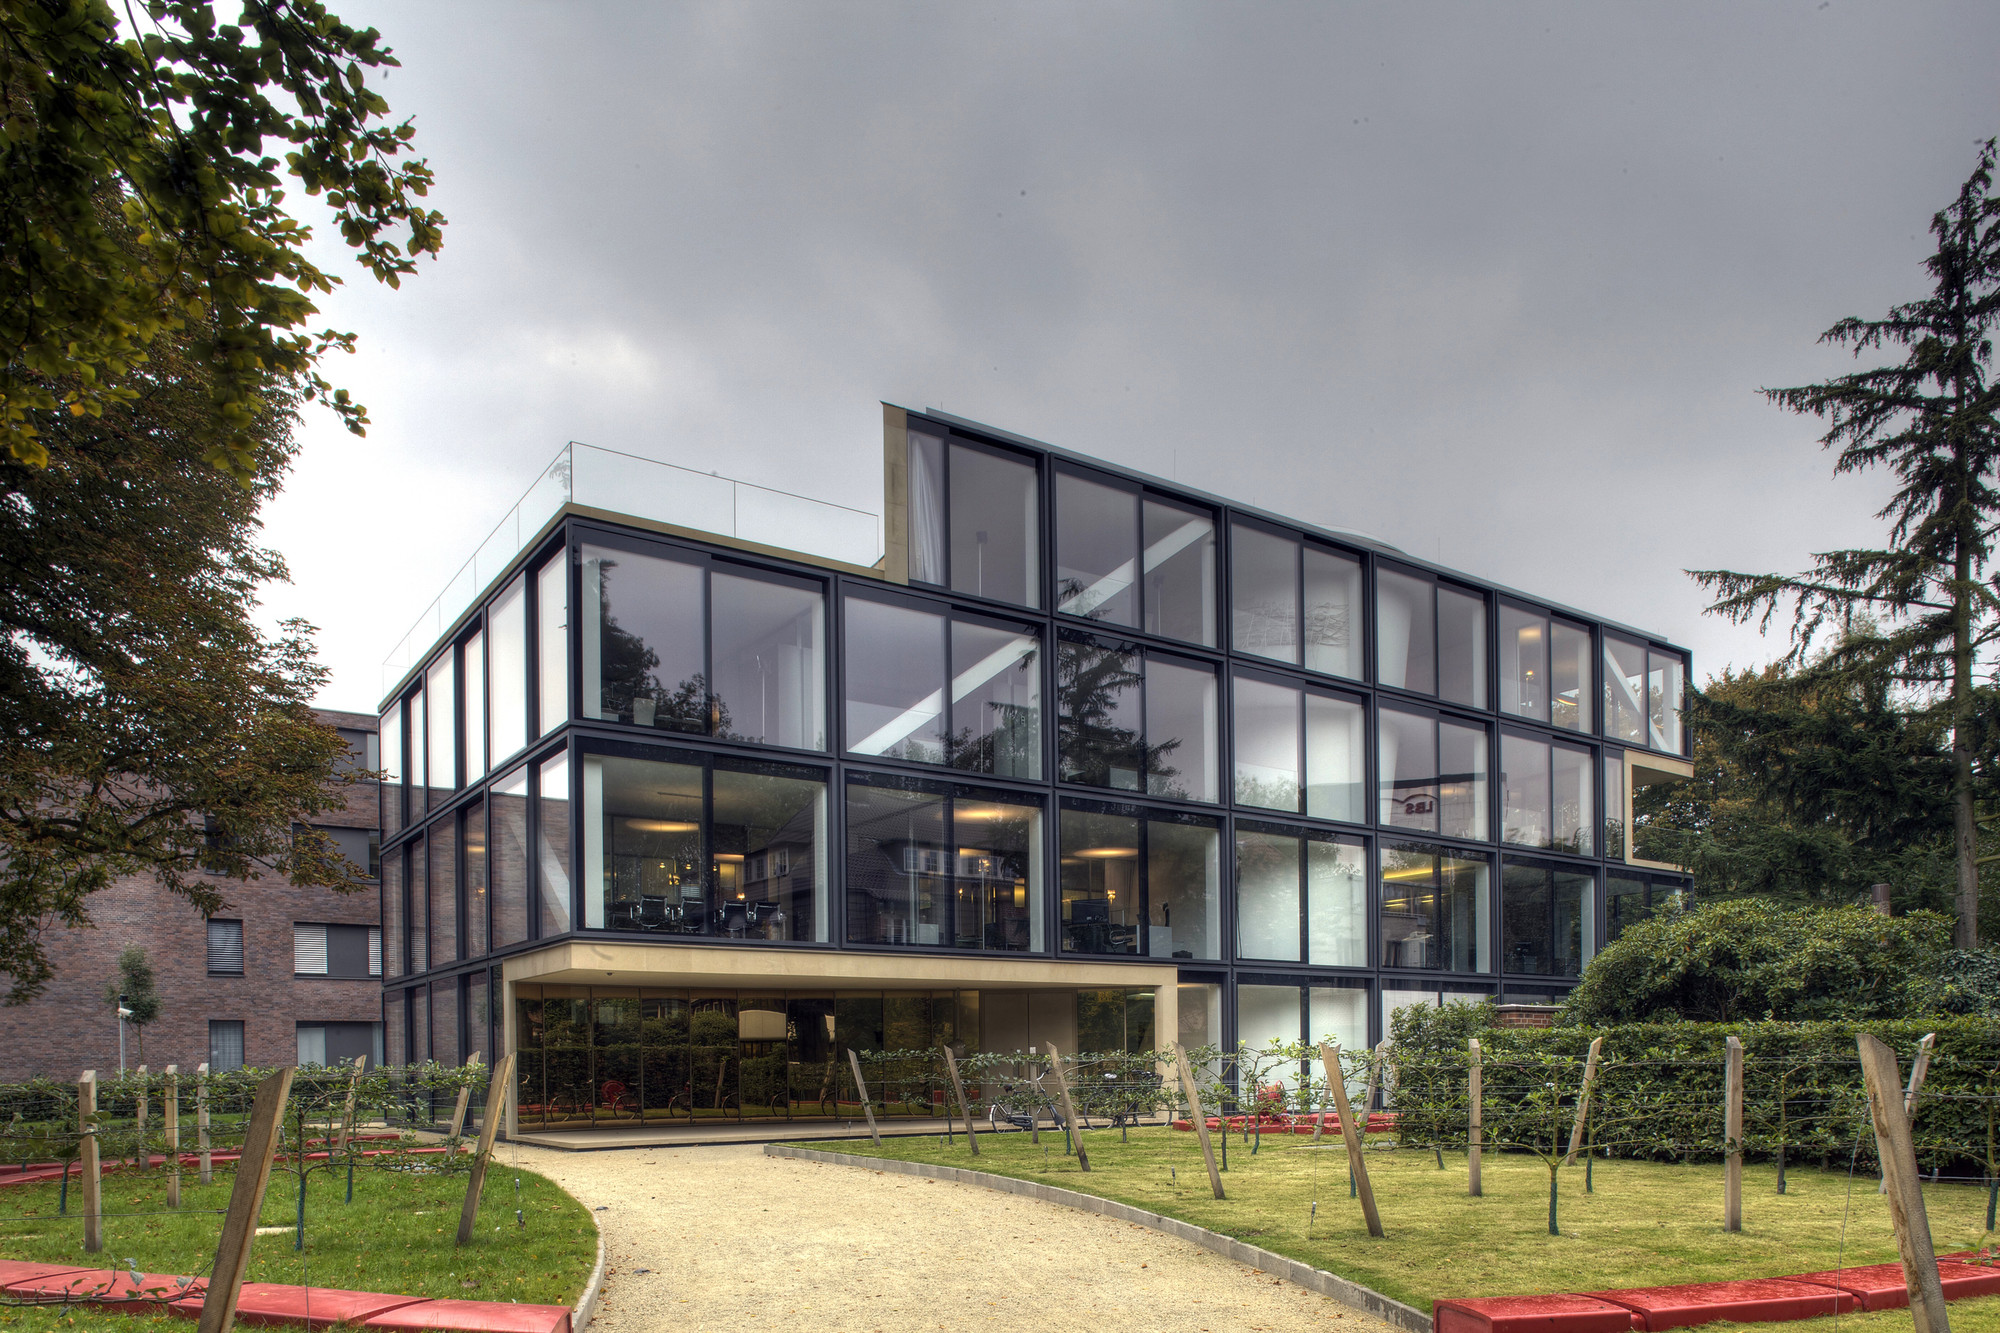 Office building allmann sattler wappner architekten for Office design archdaily